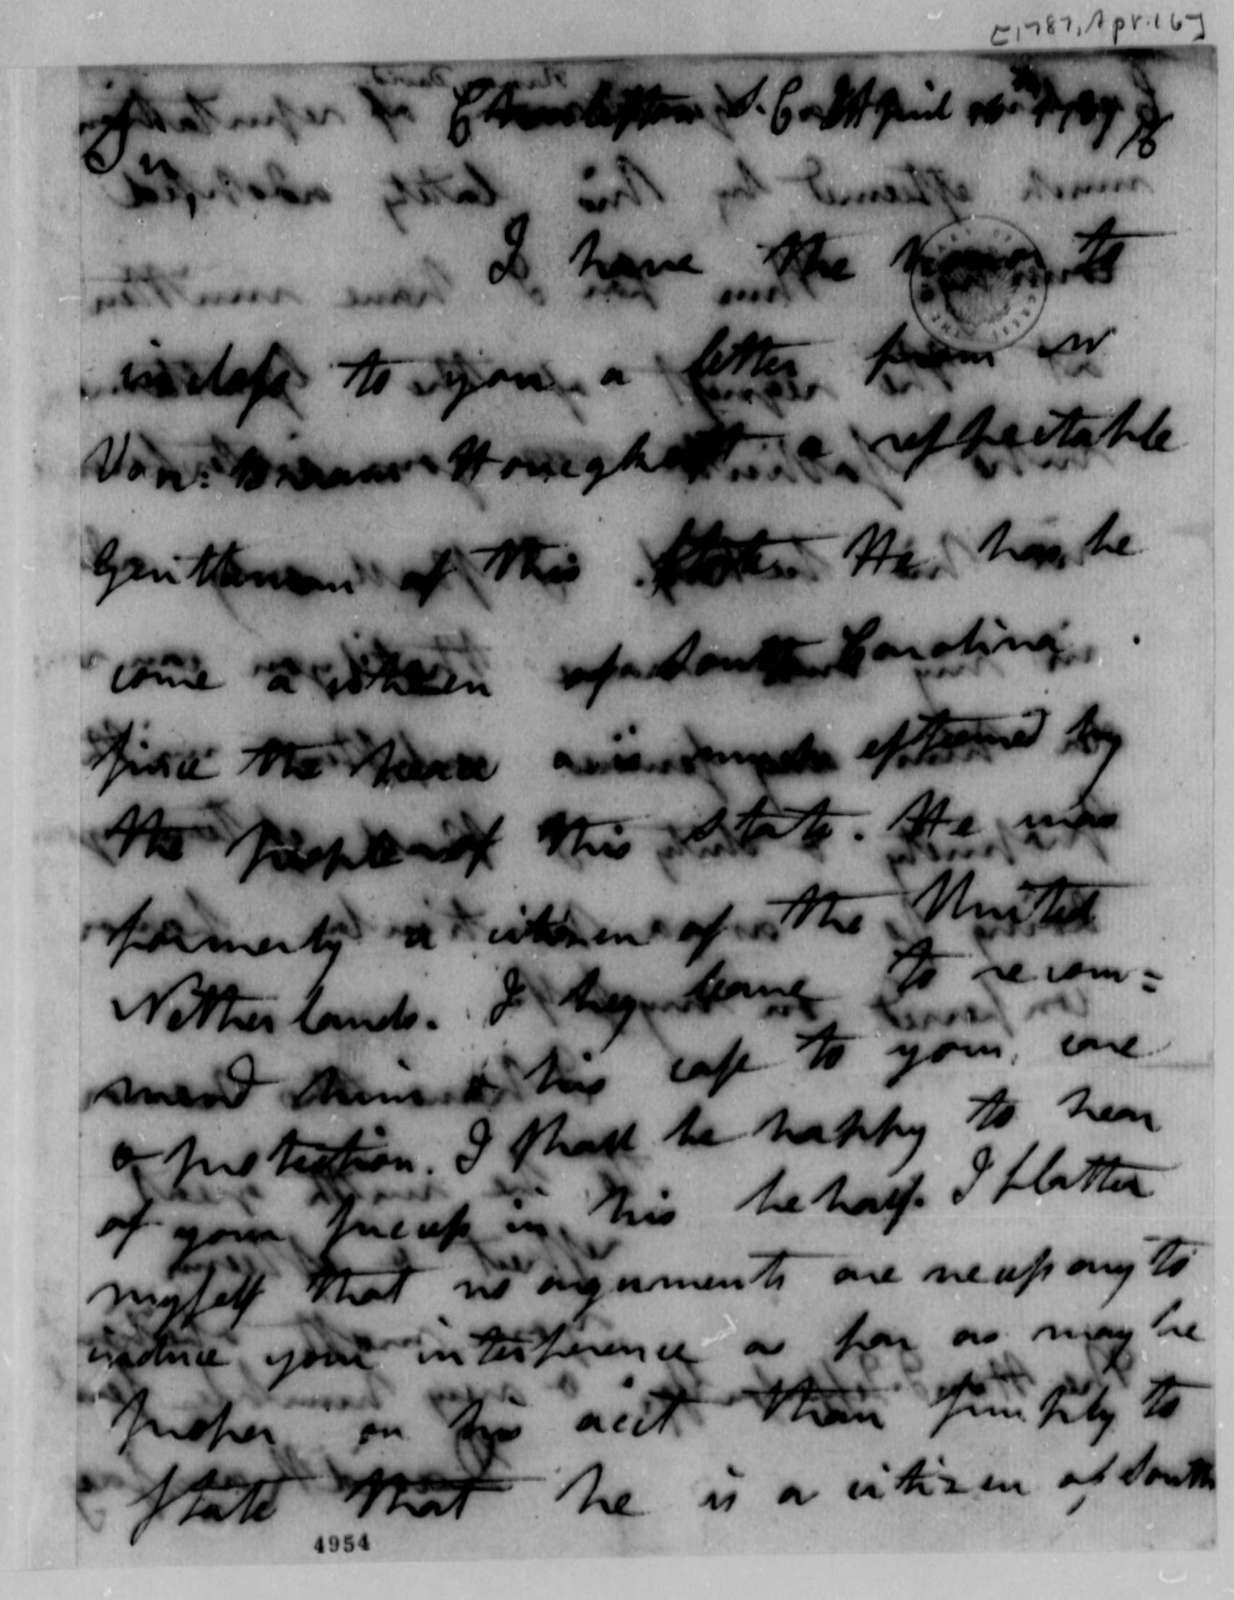 David Ramsay to Thomas Jefferson, April 16, 1787, Letter of Recommendation for A. E. van Braam Houckgeeste